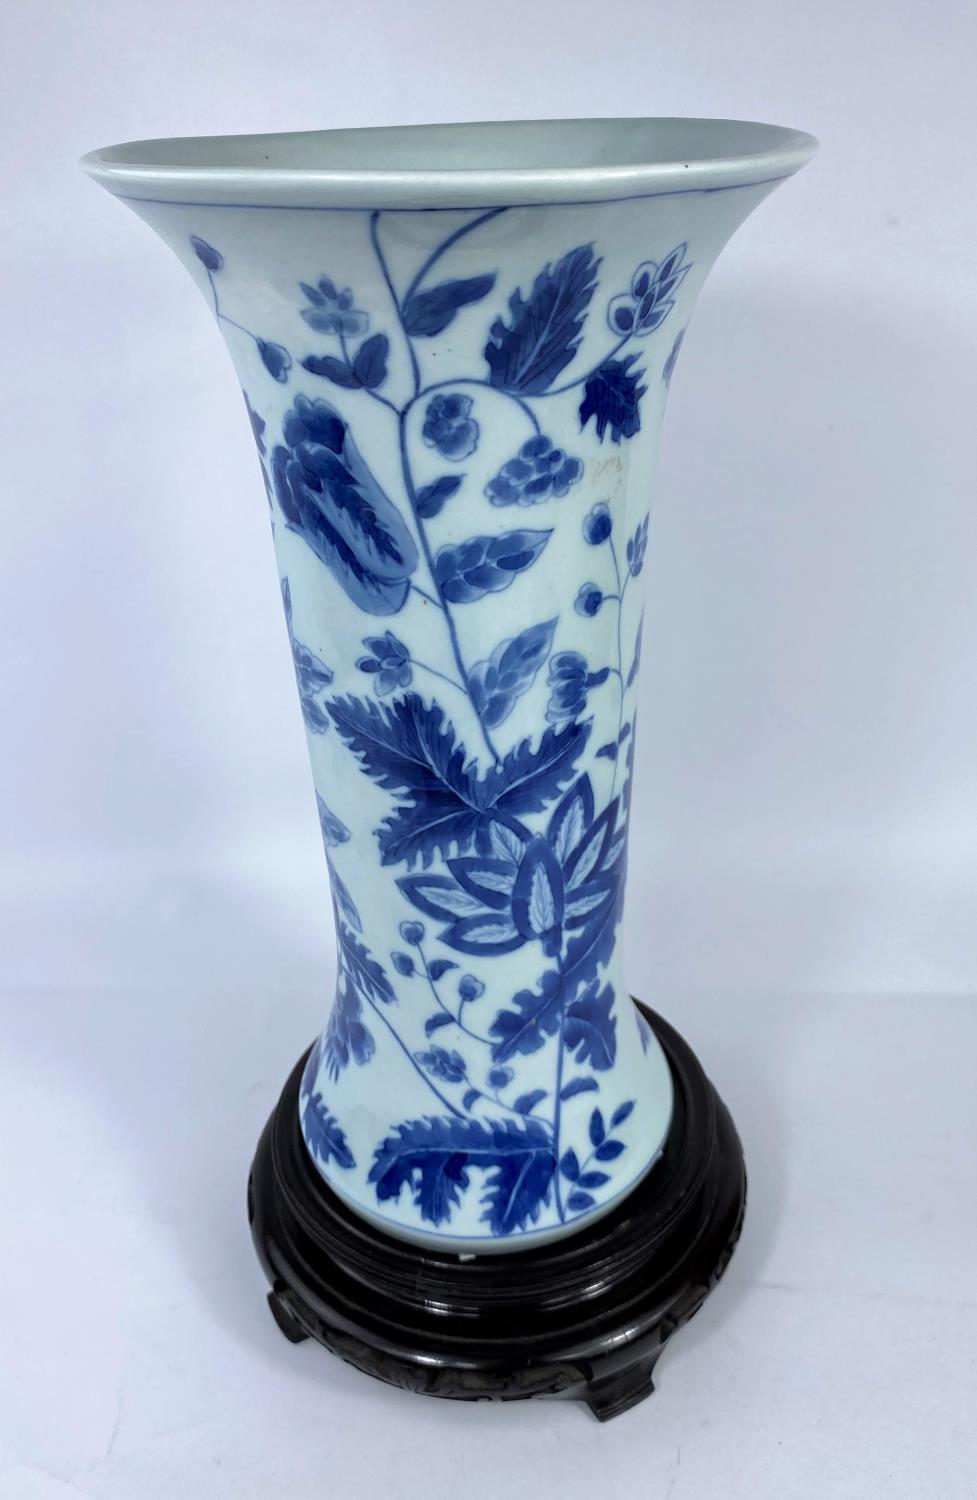 A Chinese porcelain vase of waisted cylindrical form, decorated with flowers and leaves in